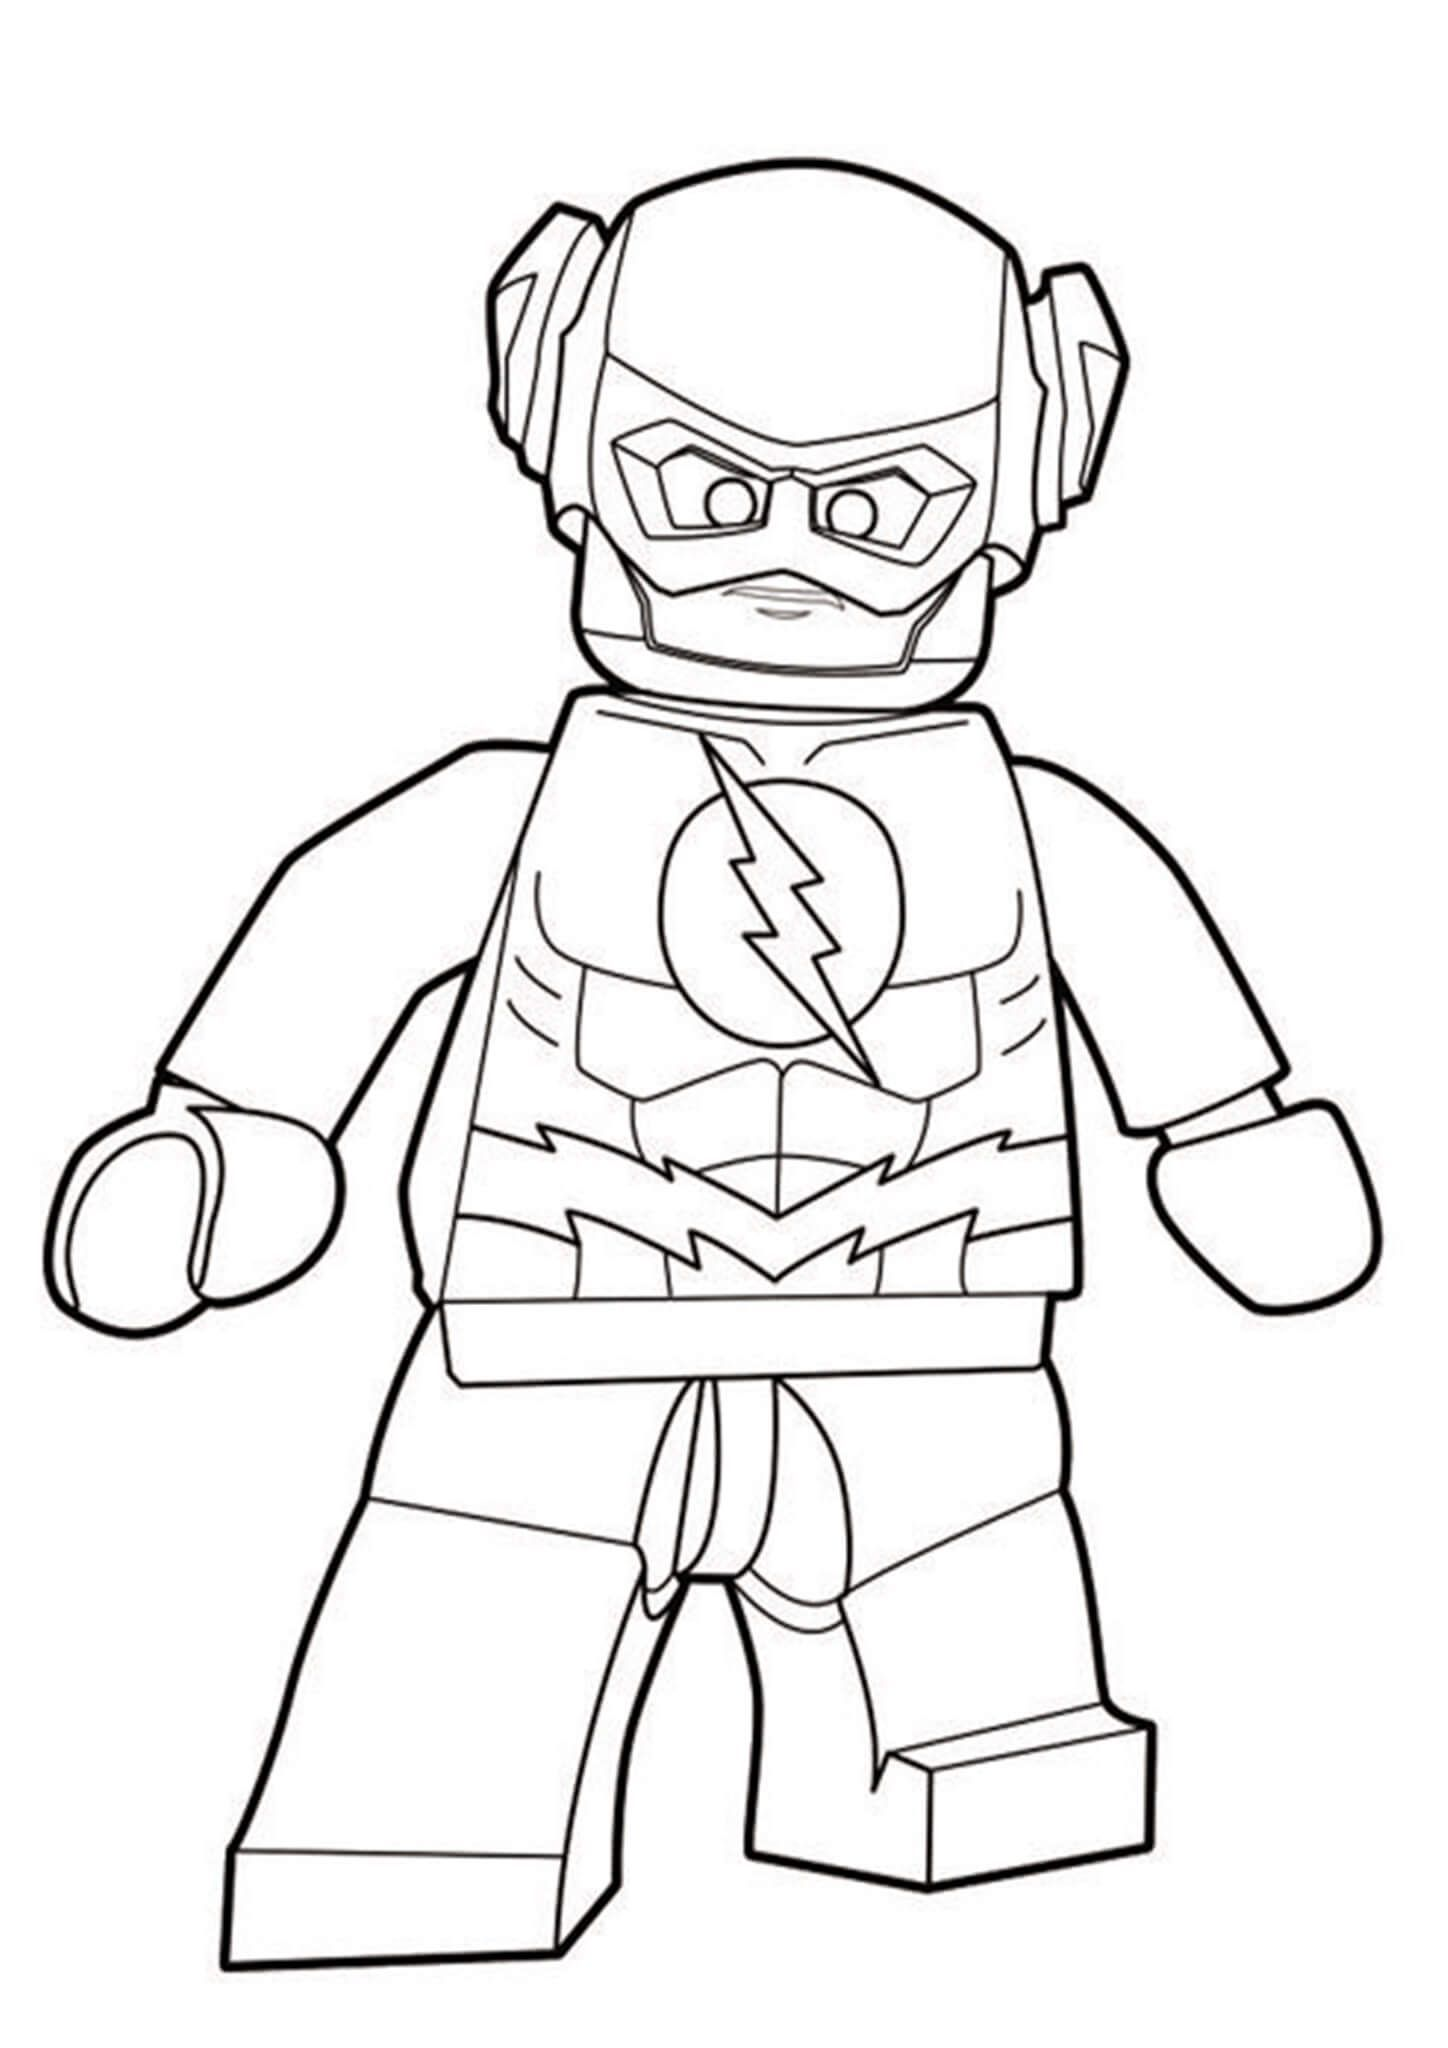 Free Easy To Print Flash Coloring Pages Superhero Coloring Pages Avengers Coloring Pages Lego Coloring Pages